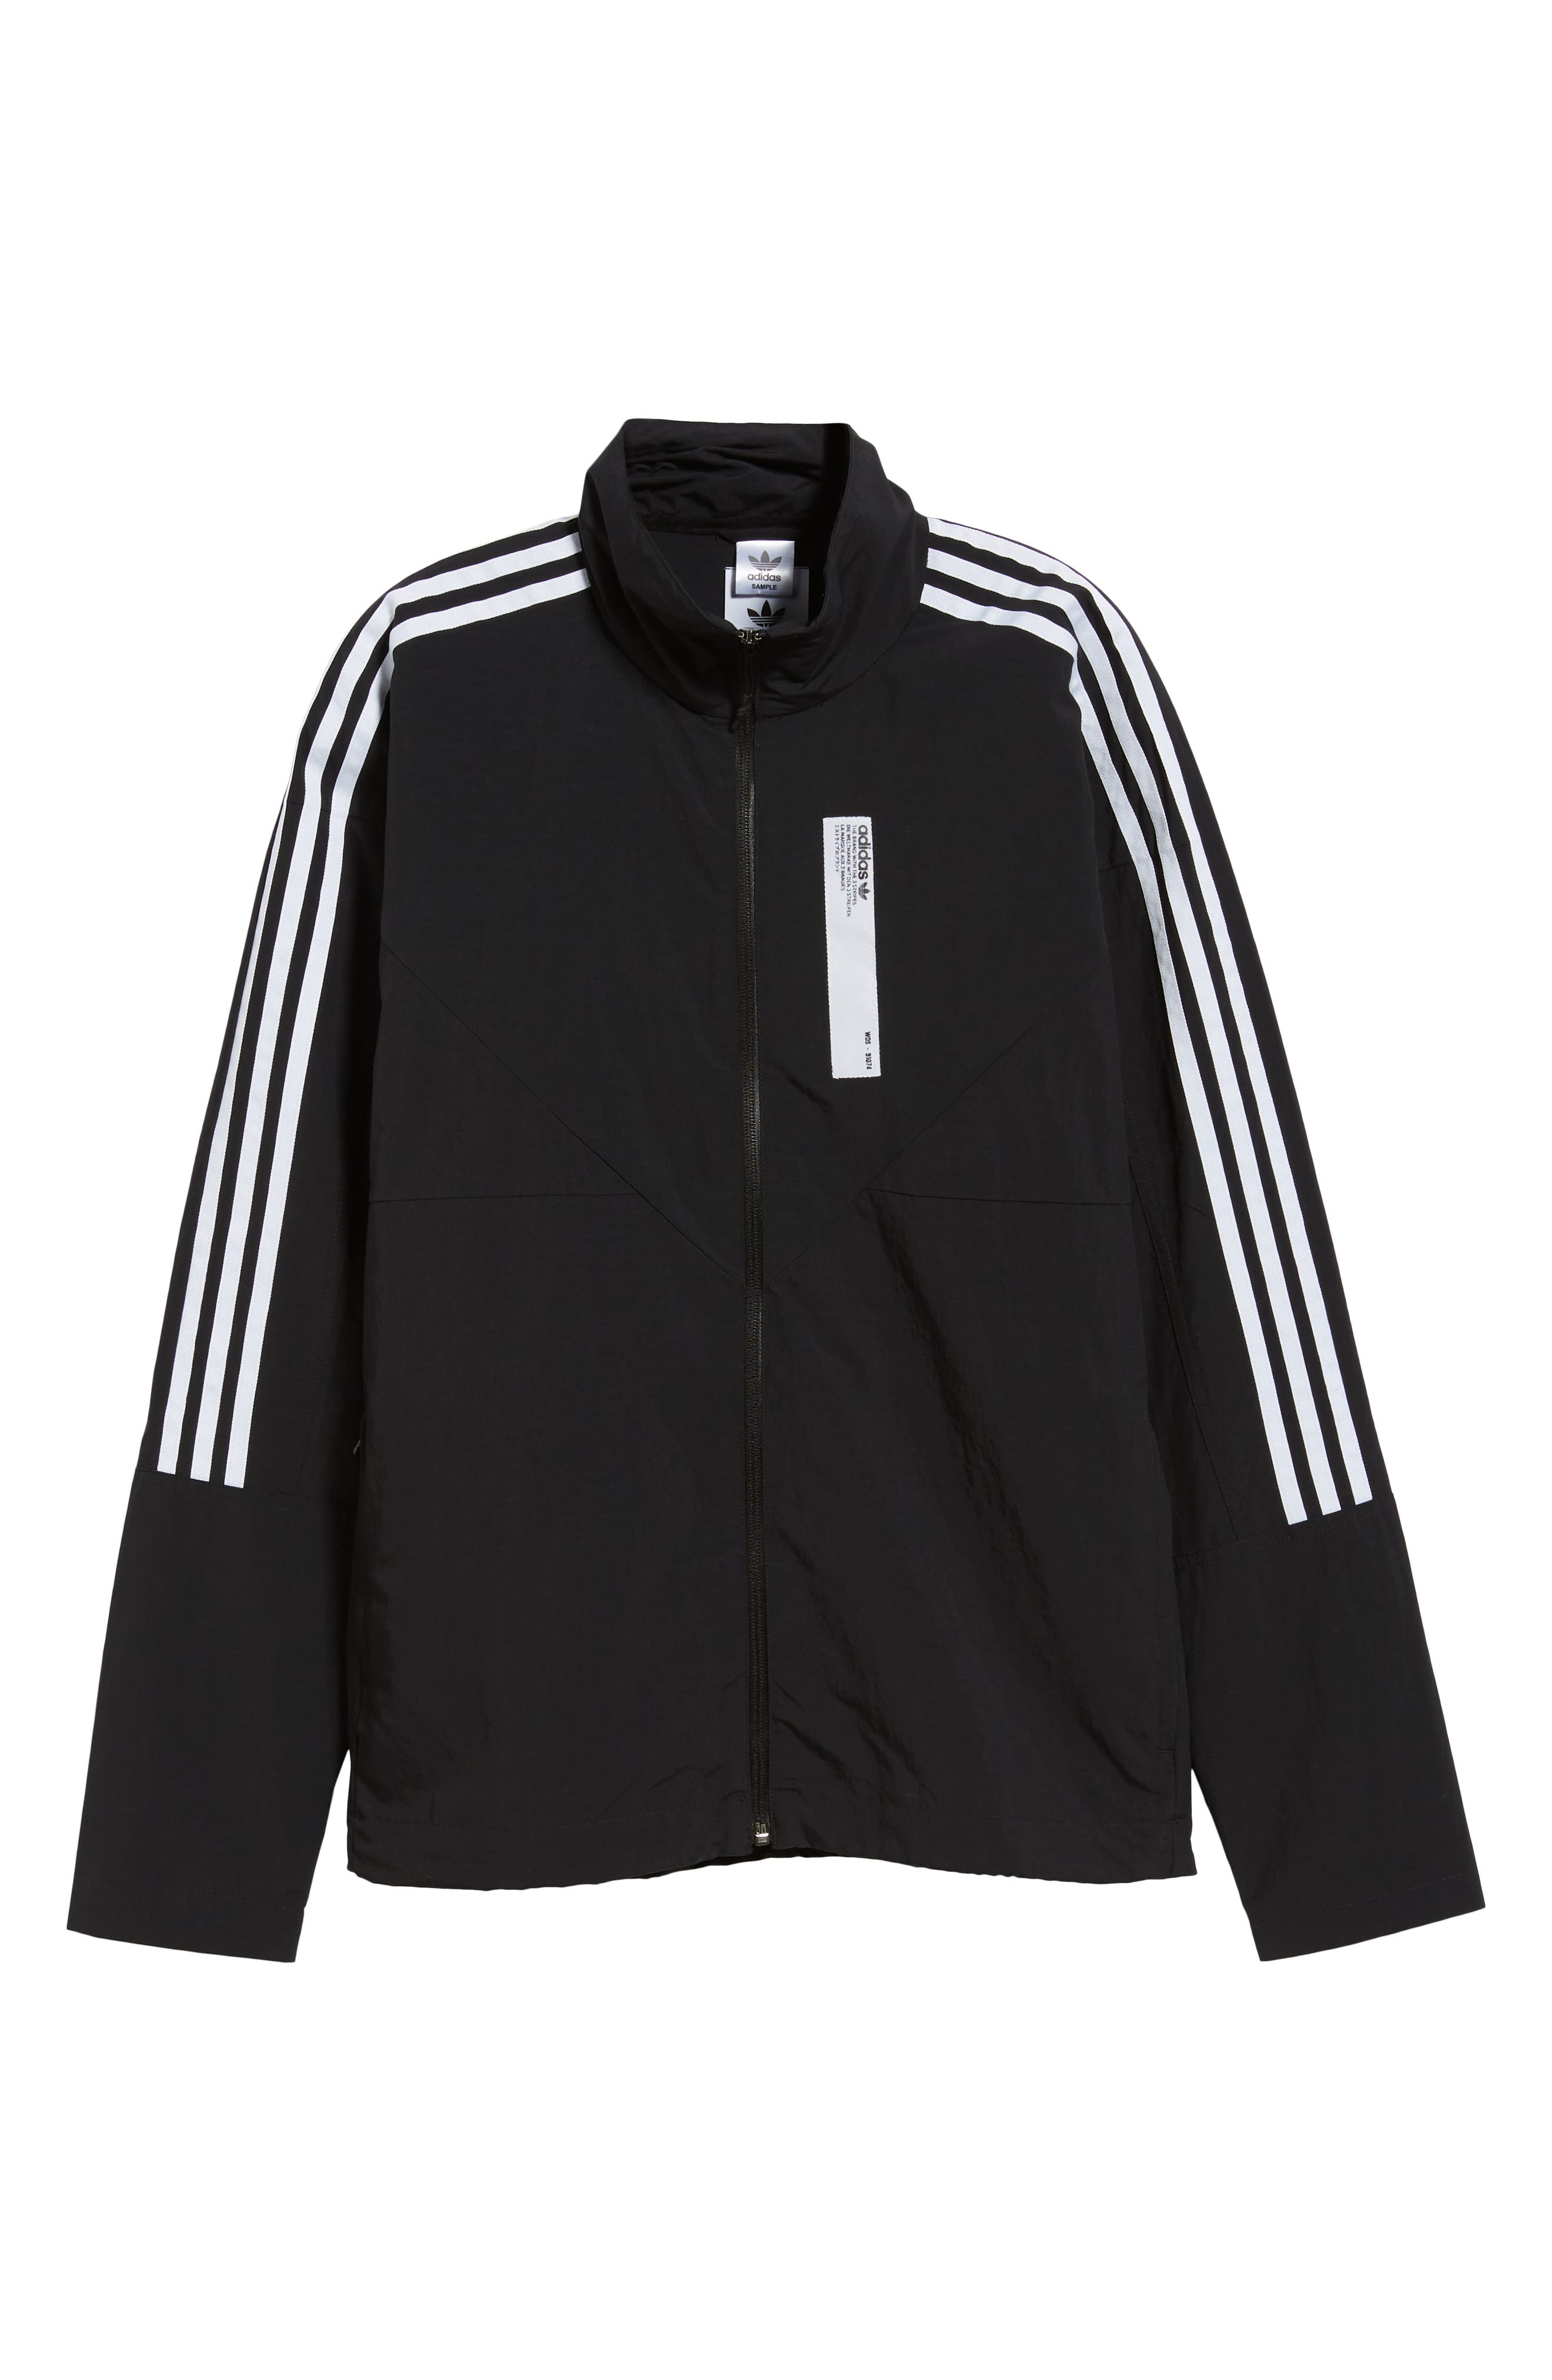 NMD Track Jacket,                             Alternate thumbnail 6, color,                             001